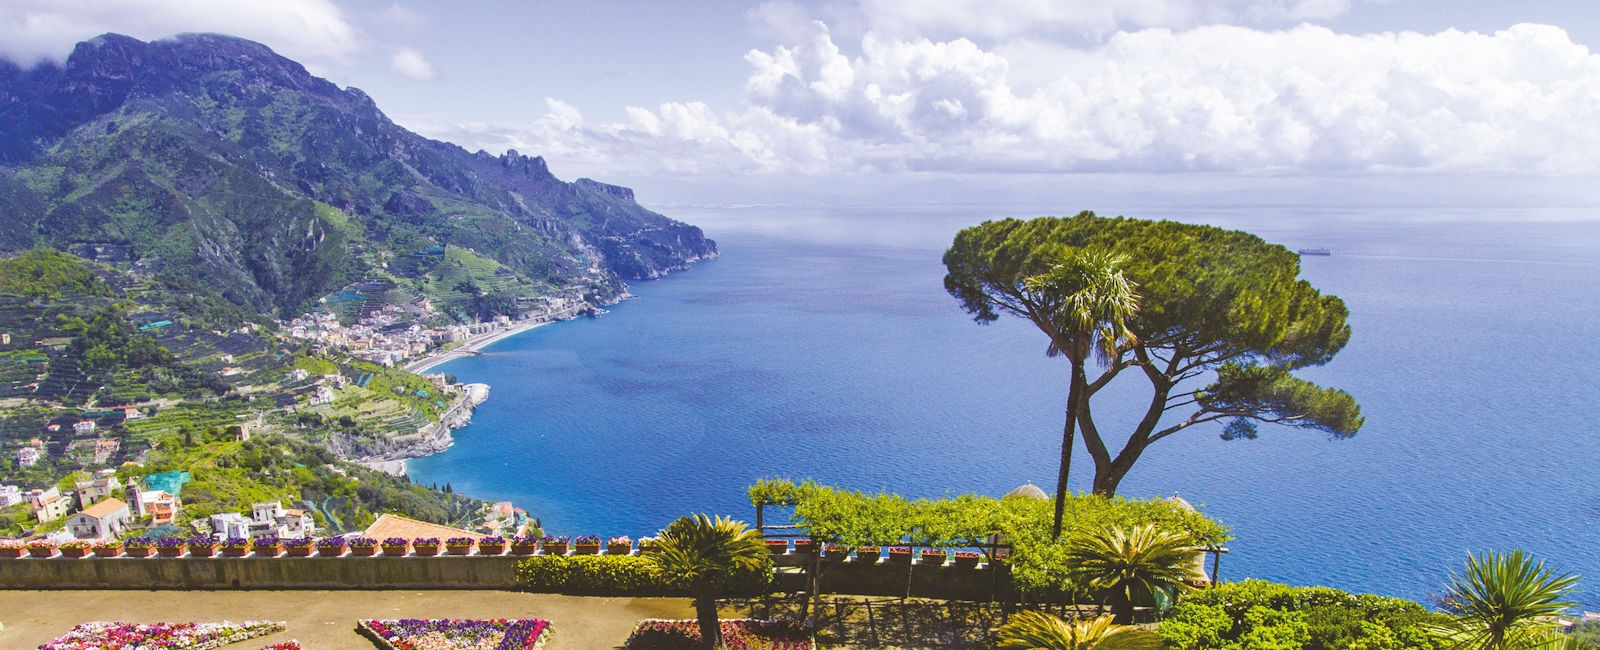 Luxury Ravello Holidays